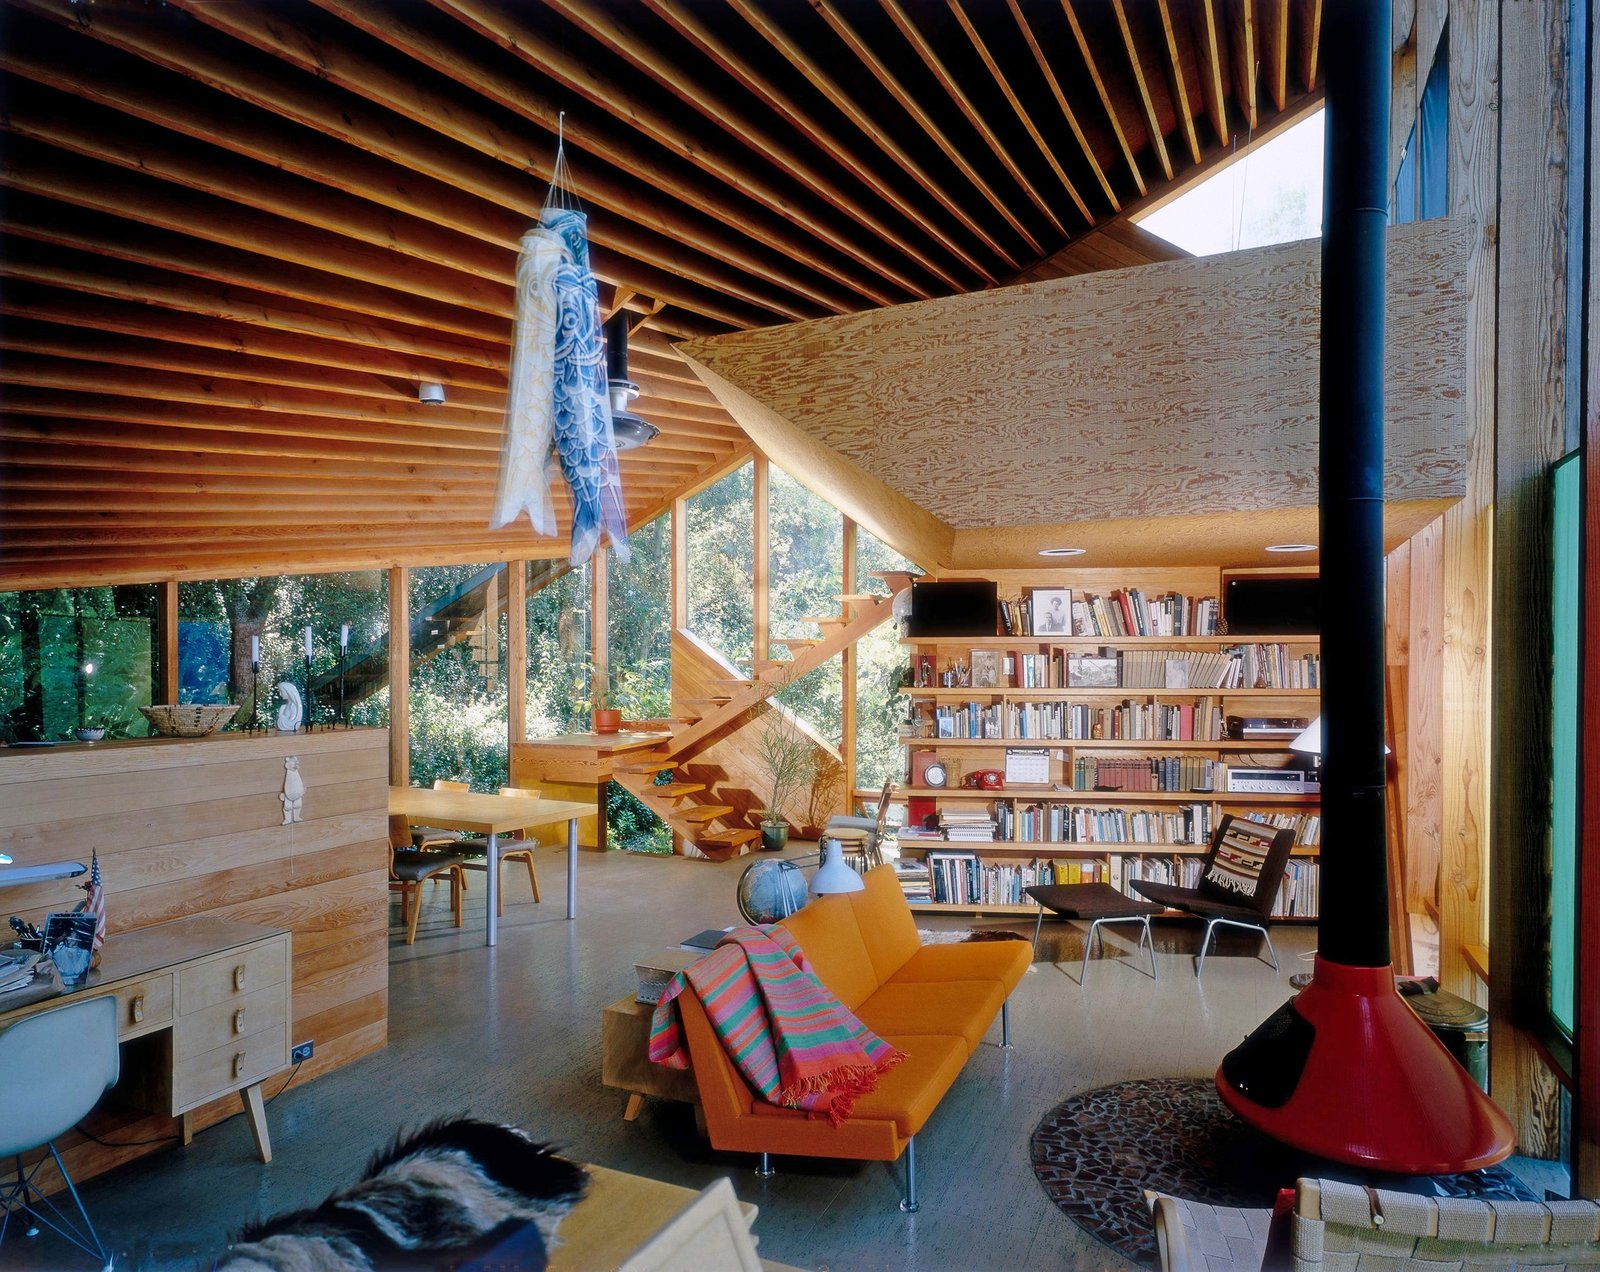 Walstrom House by John Lautner, Los Angeles, CA, 1979